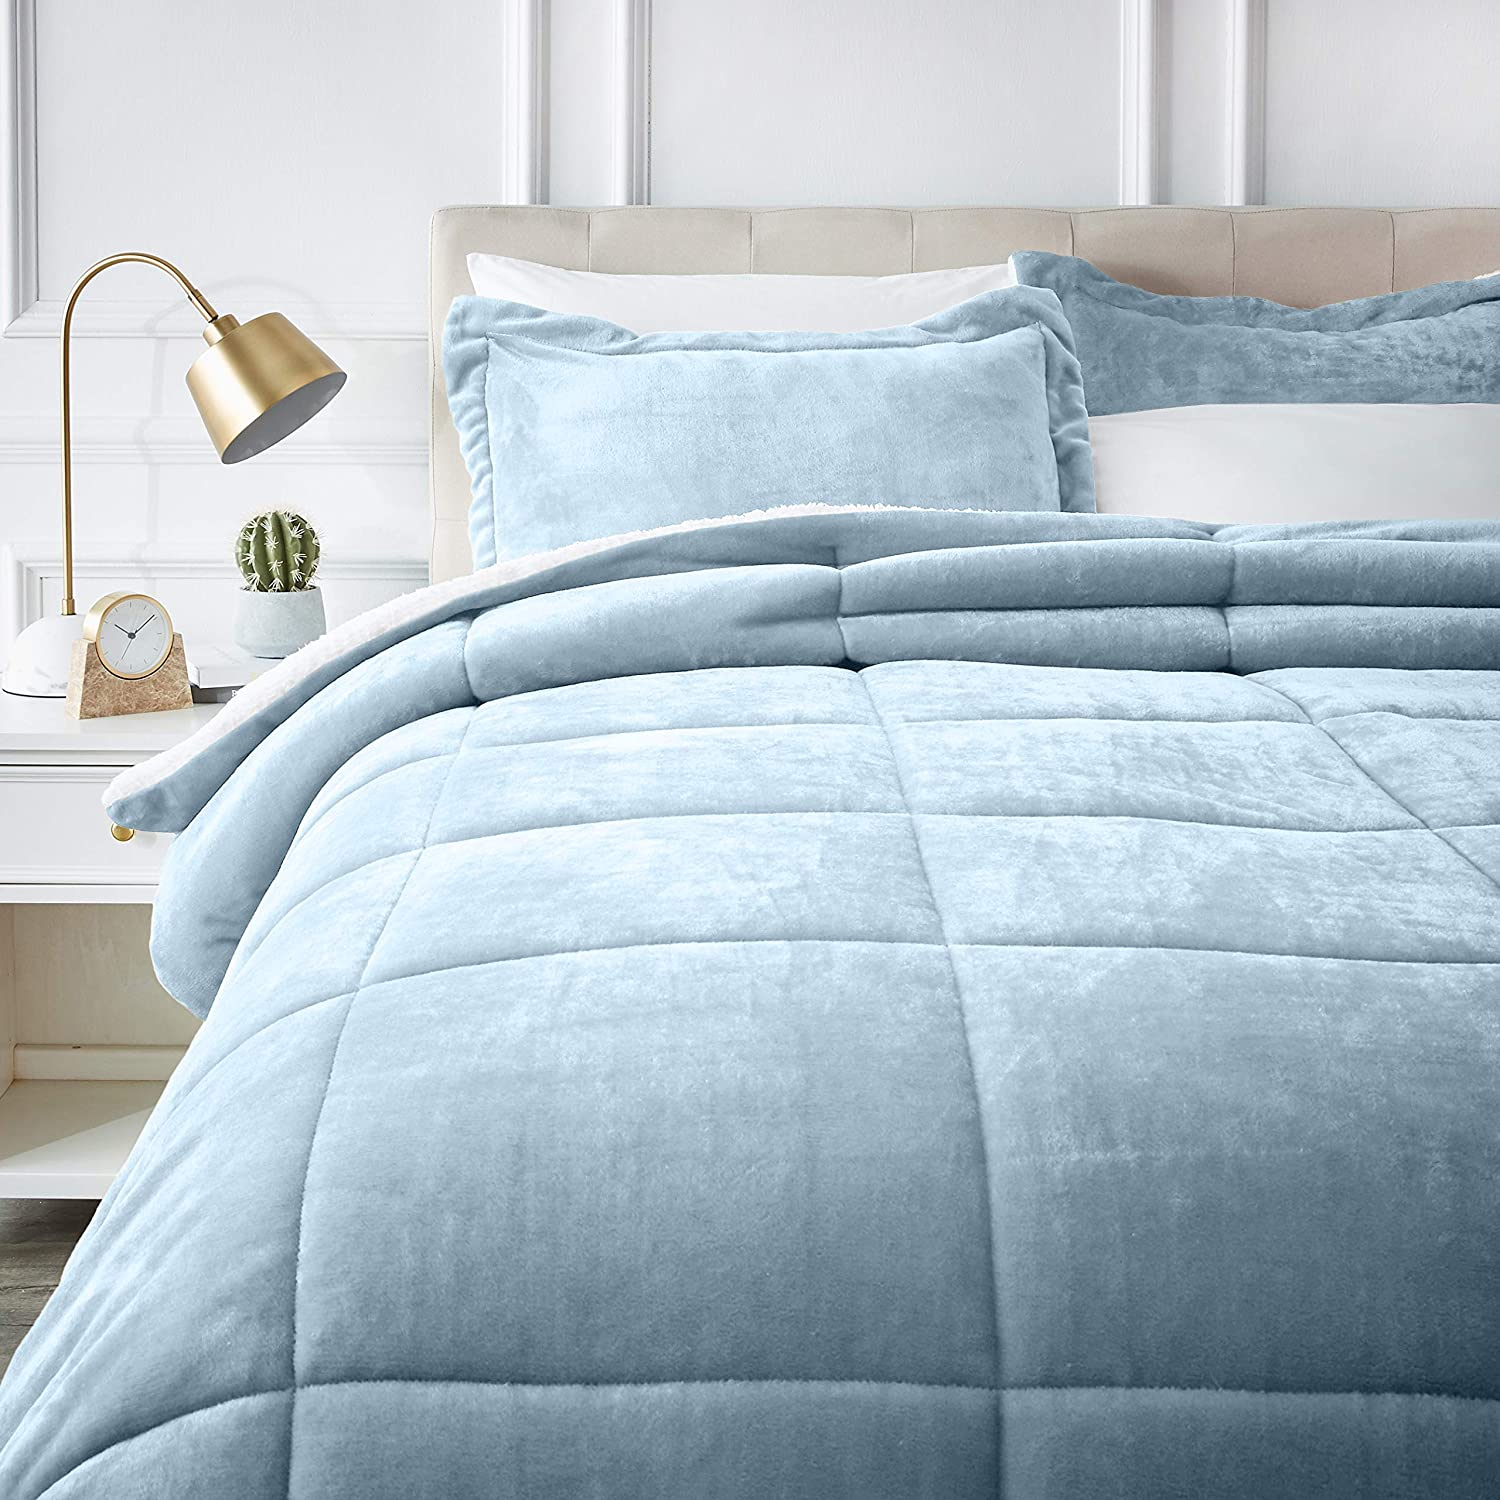 AmazonBasics Ultra-Soft Micromink Sherpa Comforter Bed Set - Full or Queen, Smoke Blue